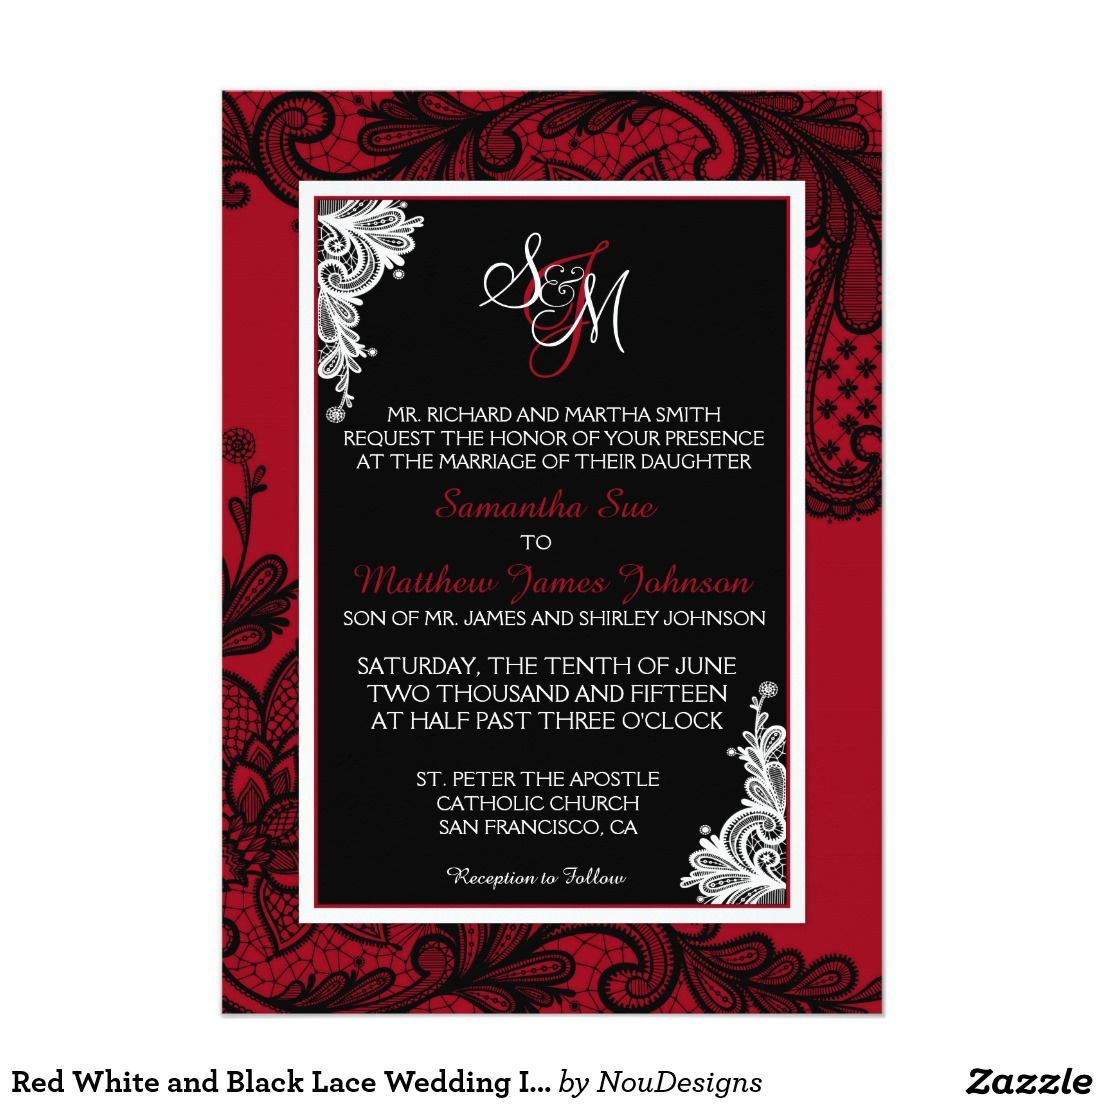 Red White and Black Lace Wedding Invitation Card | Lace Wedding ...